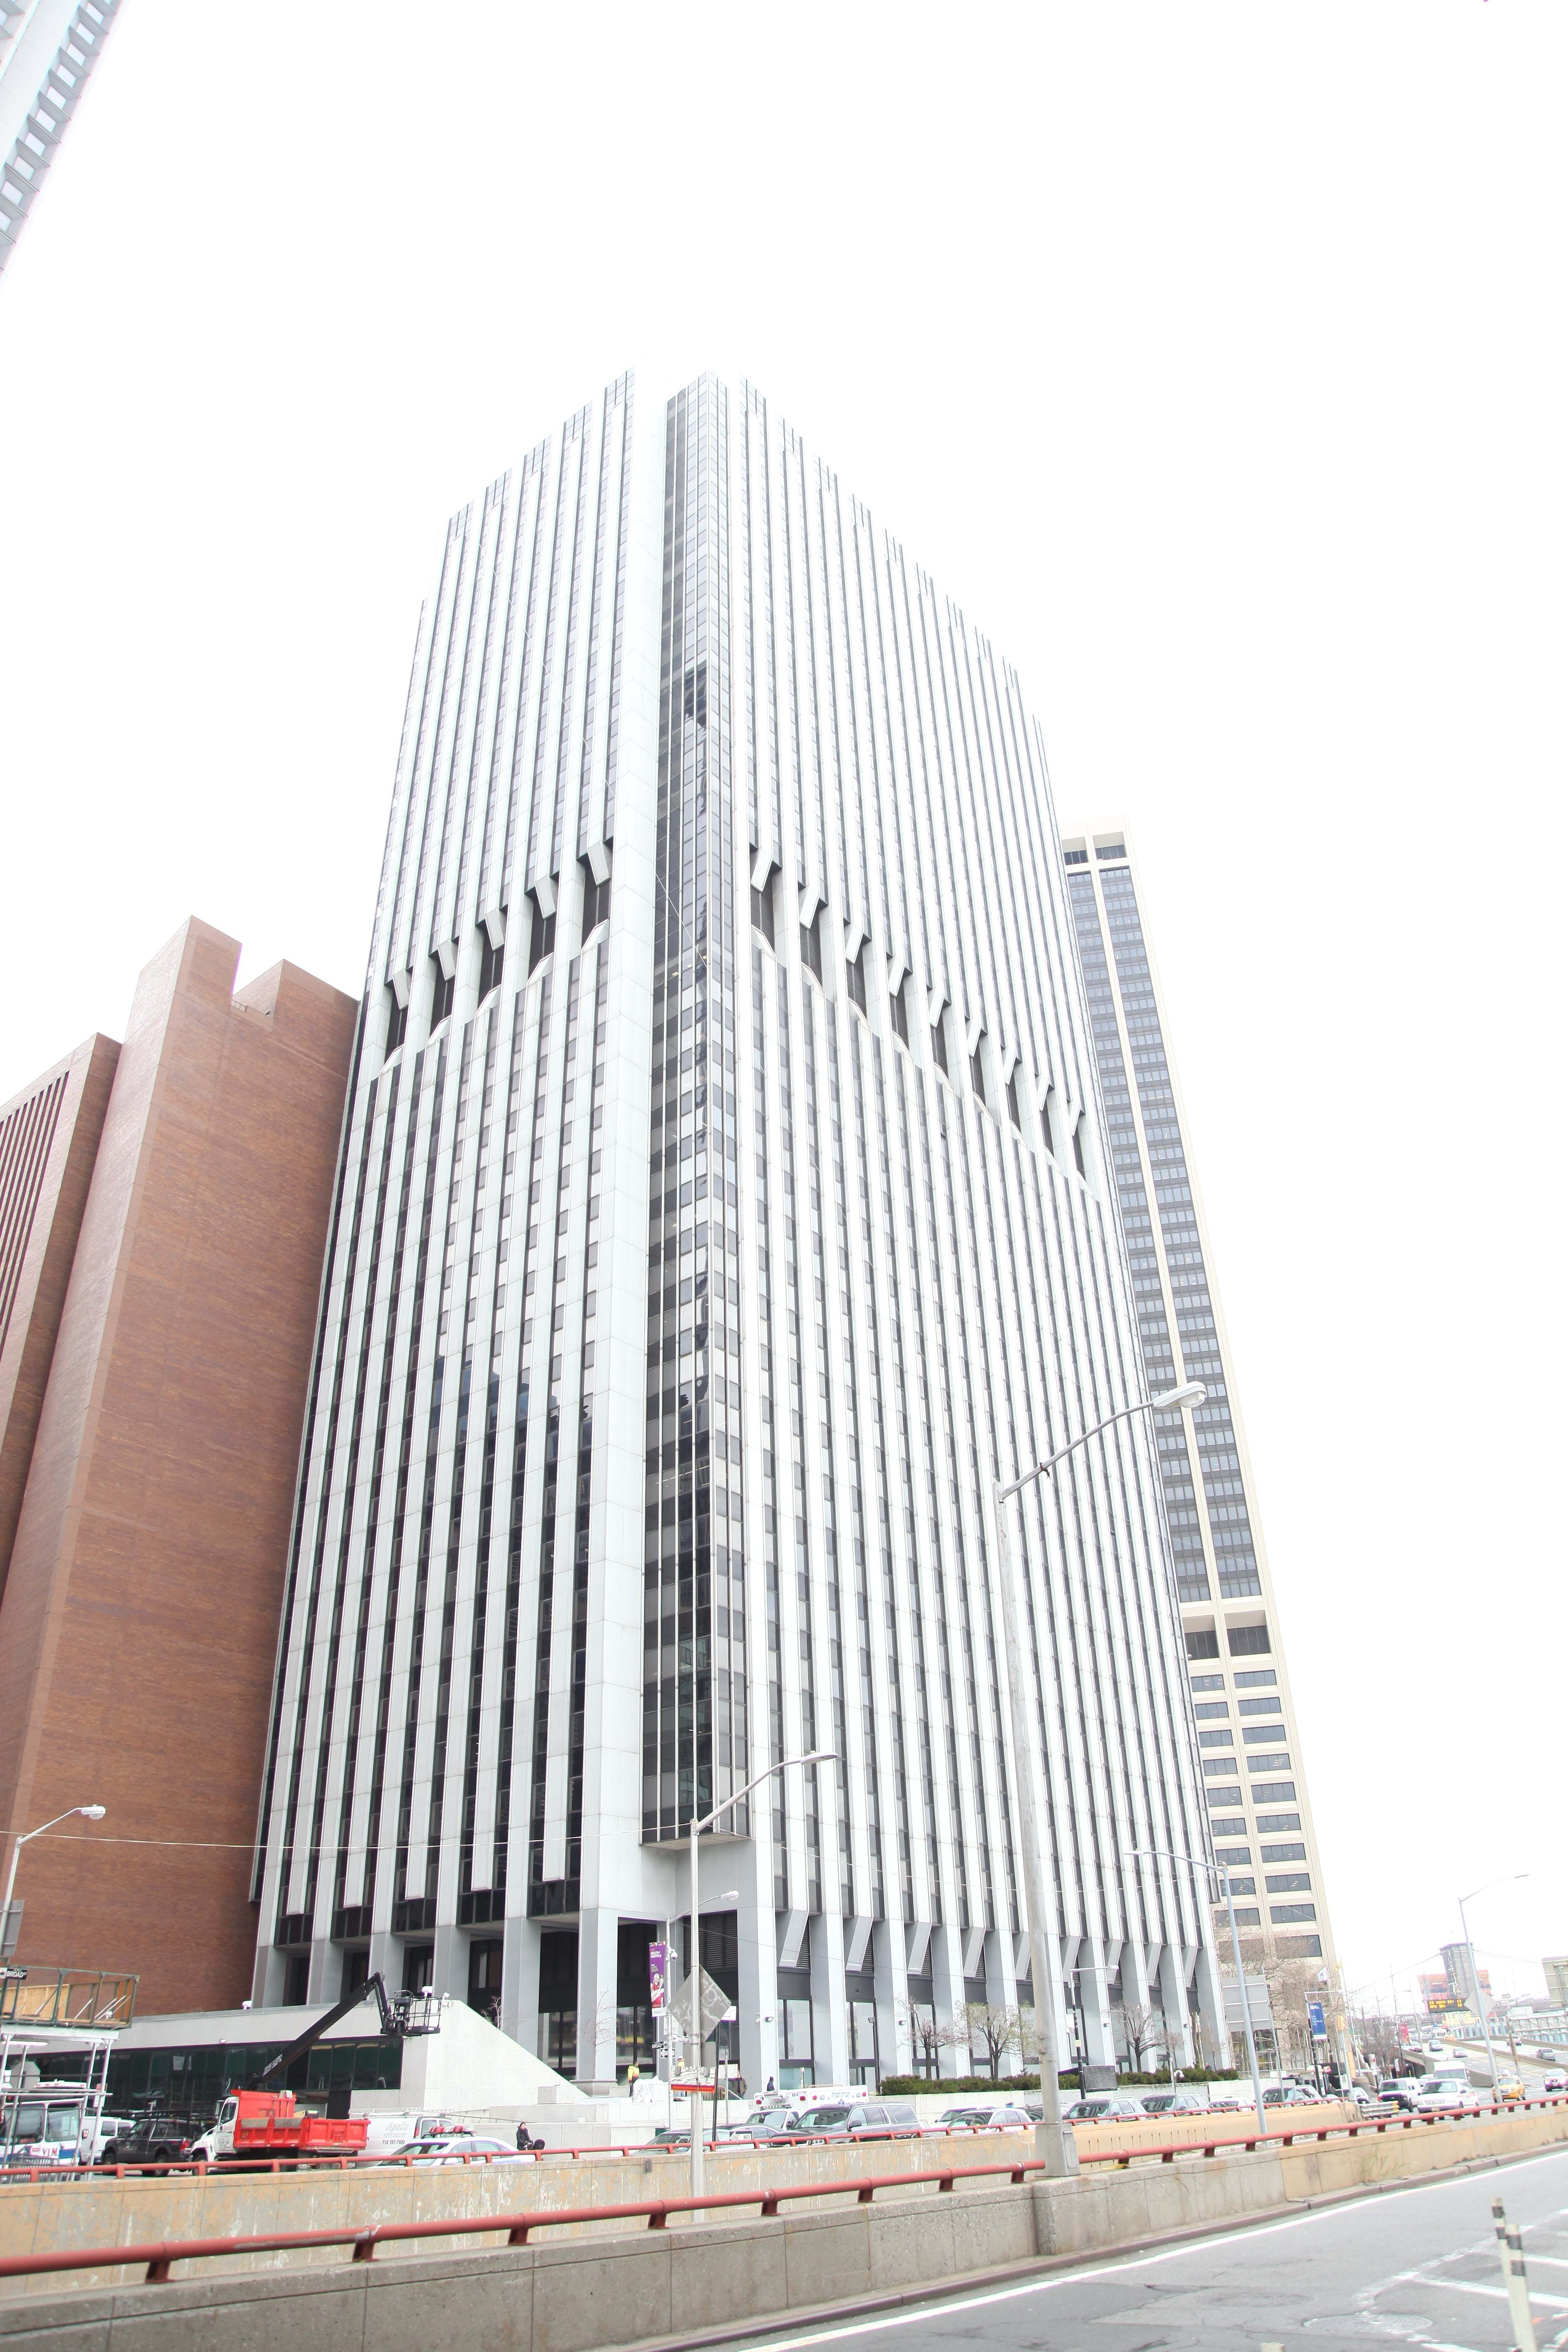 125 Broad Street, Financial District, New York, NY 10004 | SquareFoot